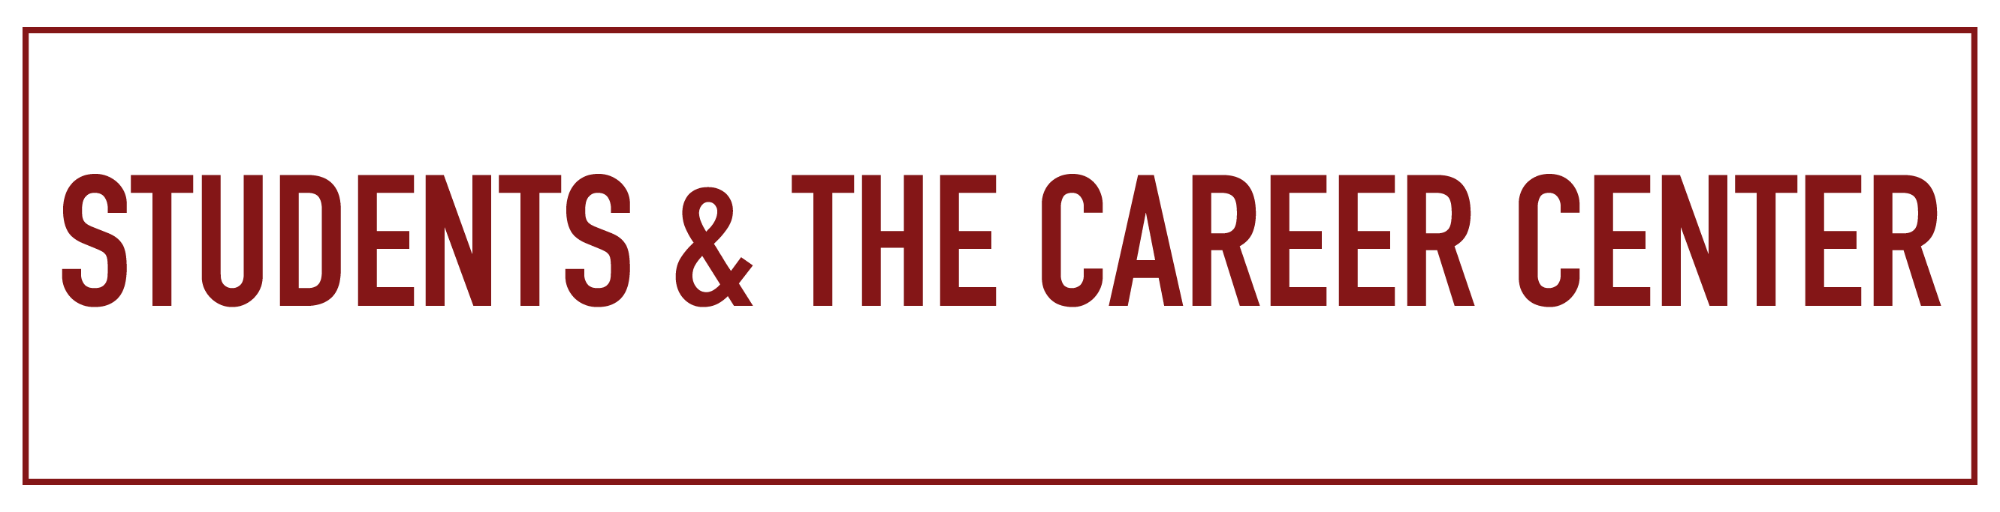 students-and-career-services-header